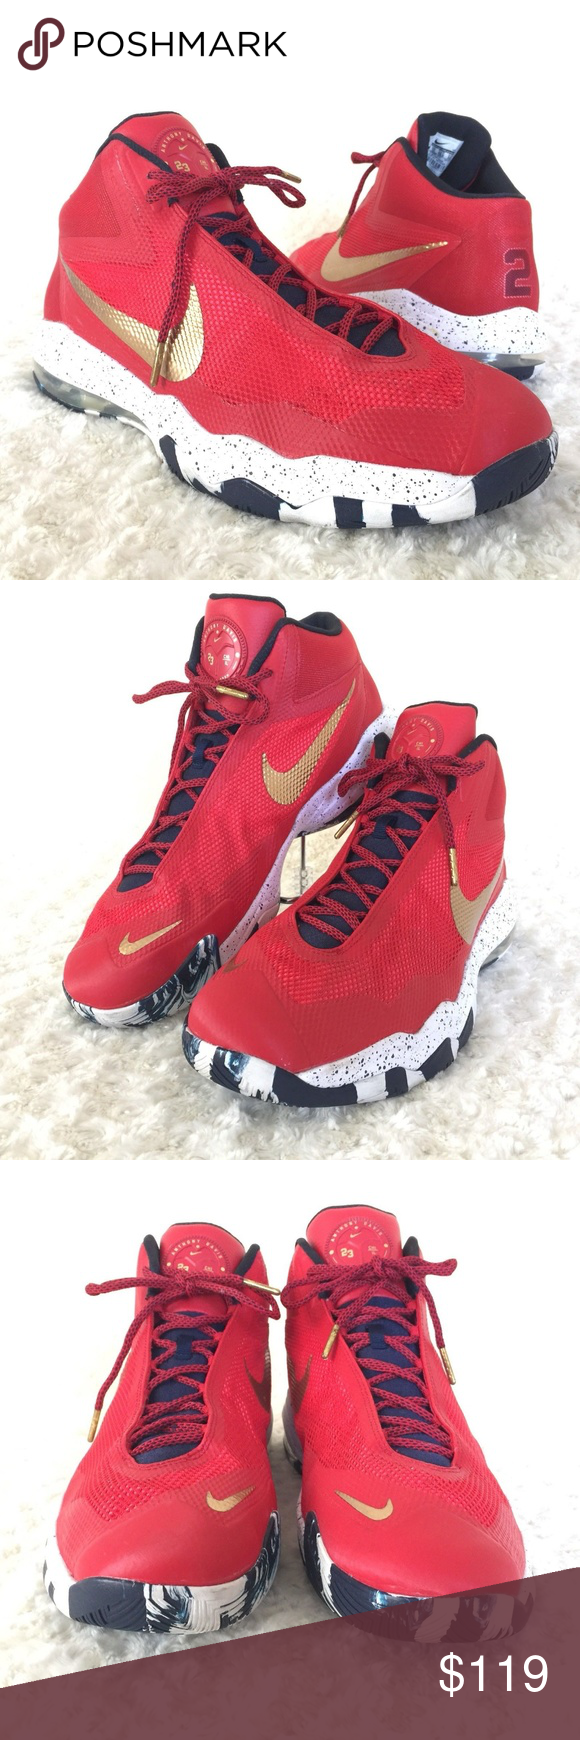 best sneakers 42c86 3c499 Nike Air Max Audacity Anthony Davis PE Ltd Edition Nike Air Max Audacity  Men s Size 14 US Anthony Davis PE Limited Edition Basketball Shoes Color   ...